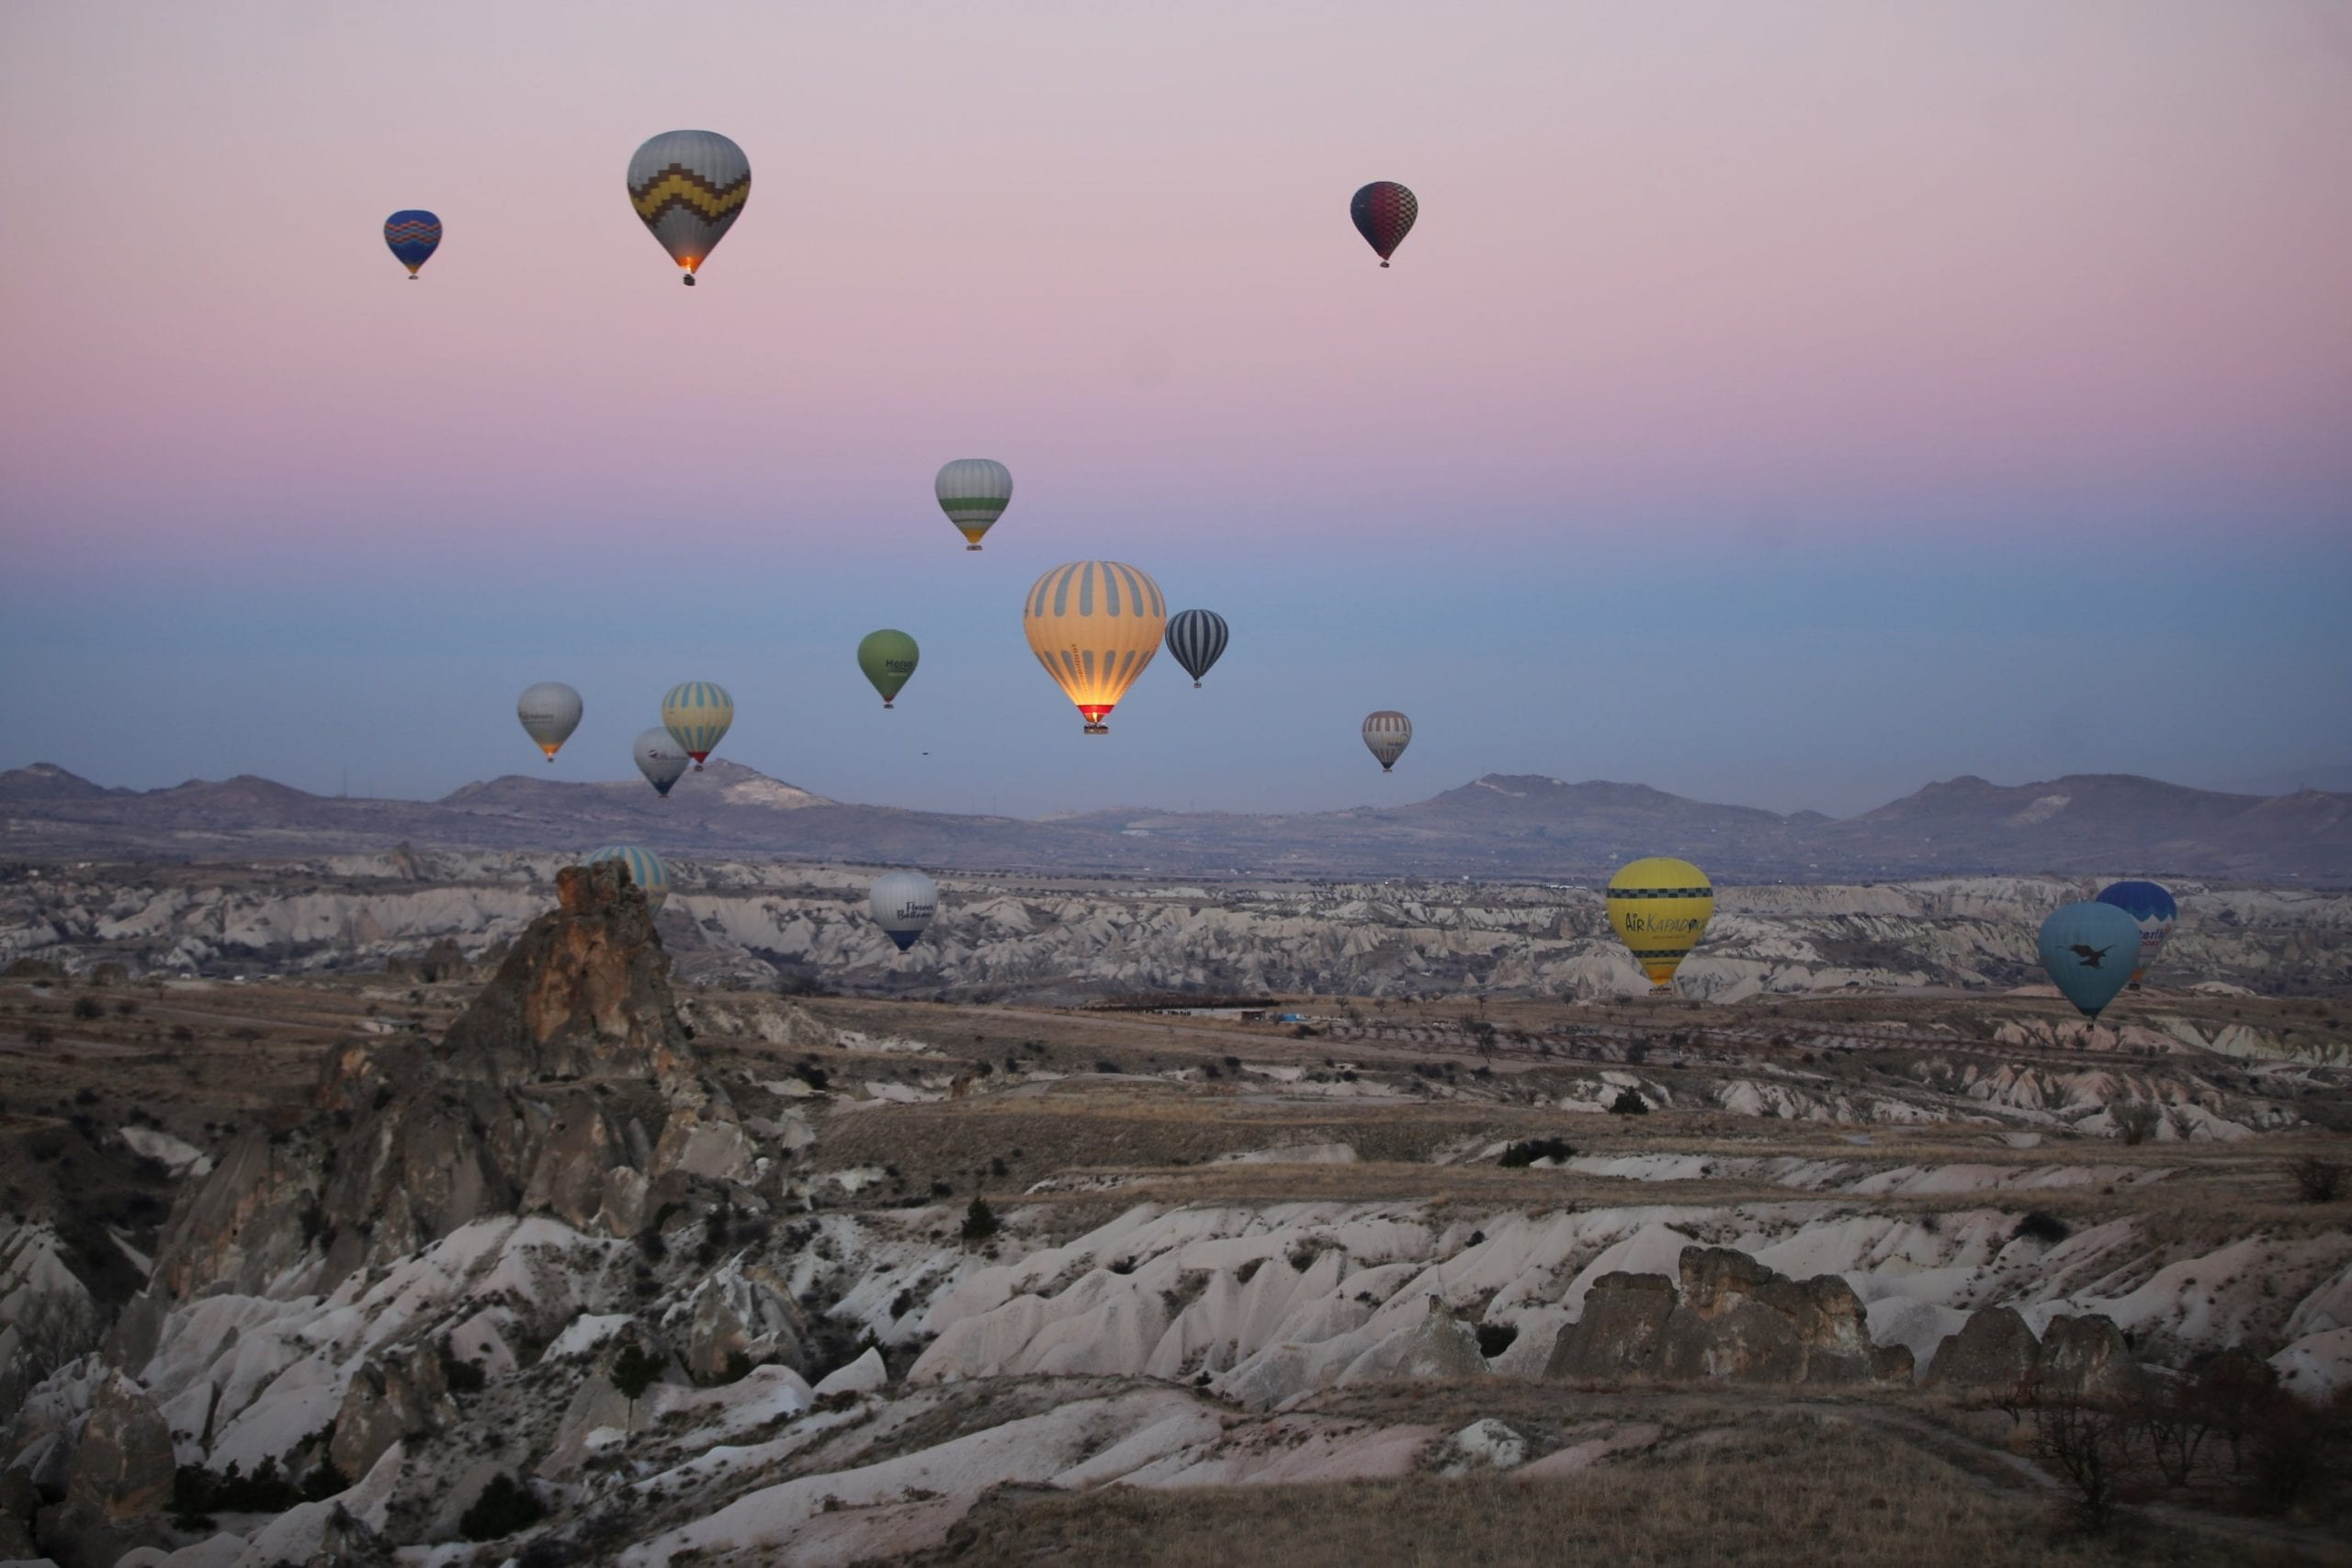 More than 120,900 visitors visited Turkey's Cappadocia in 2020